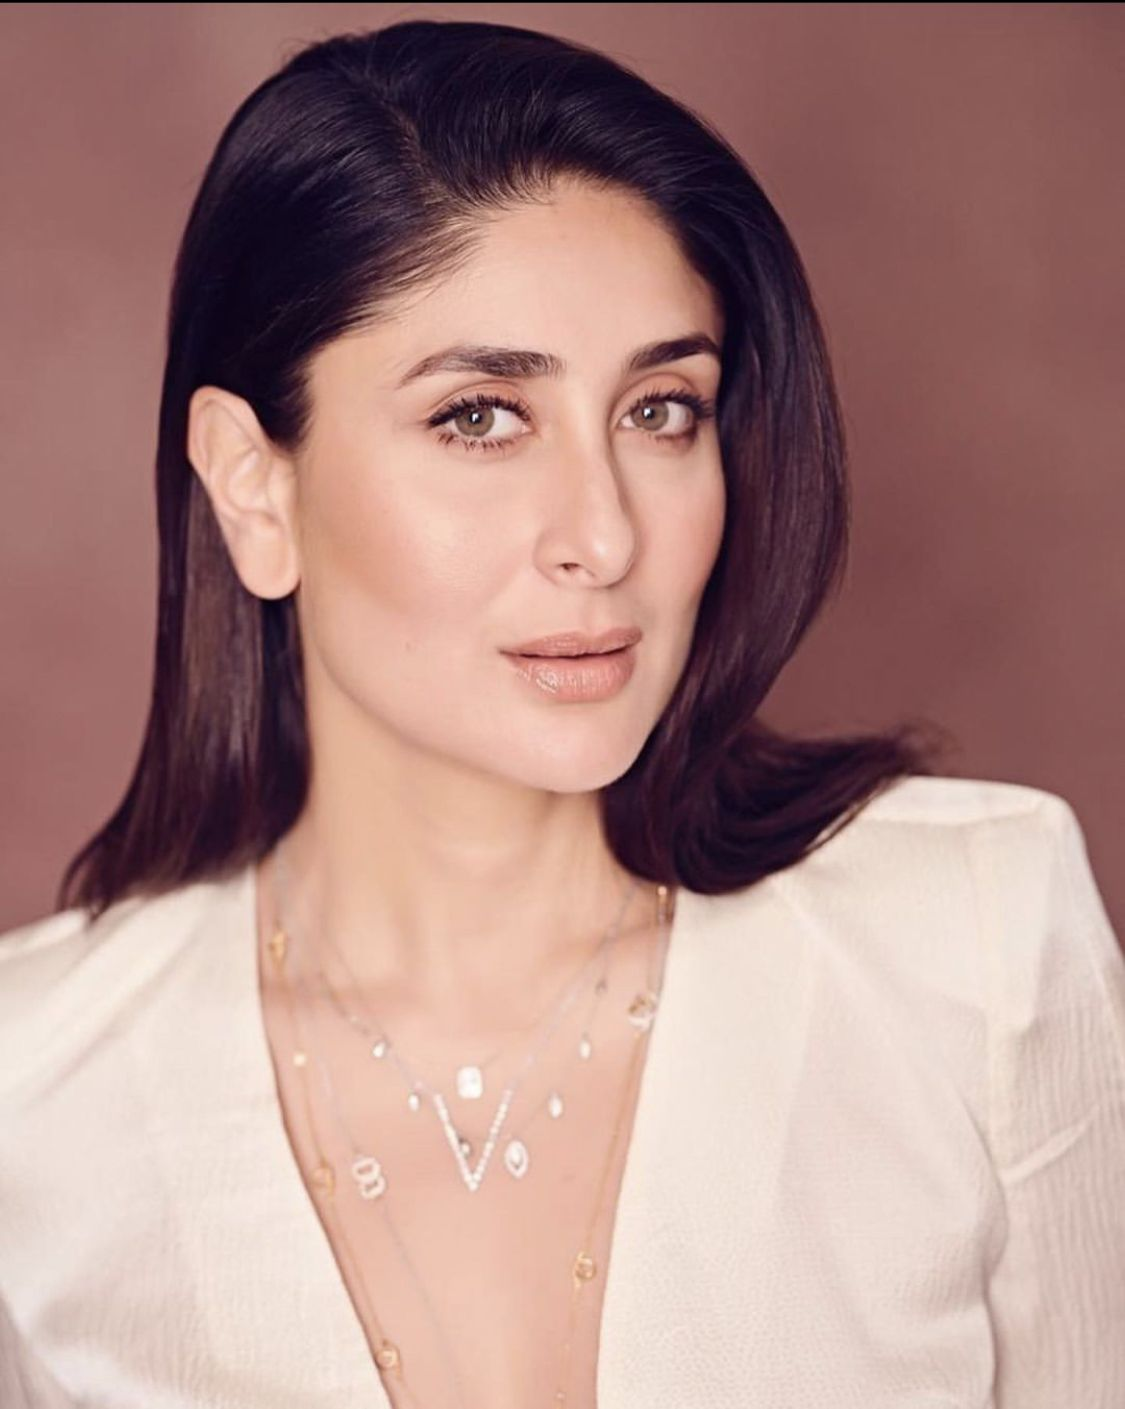 Kareena Kapoor Khan Biography Age Height Movies Net Worth More Buzzzfly Kareena Kapoor Khan Kareena Kapoor Karena Kapoor